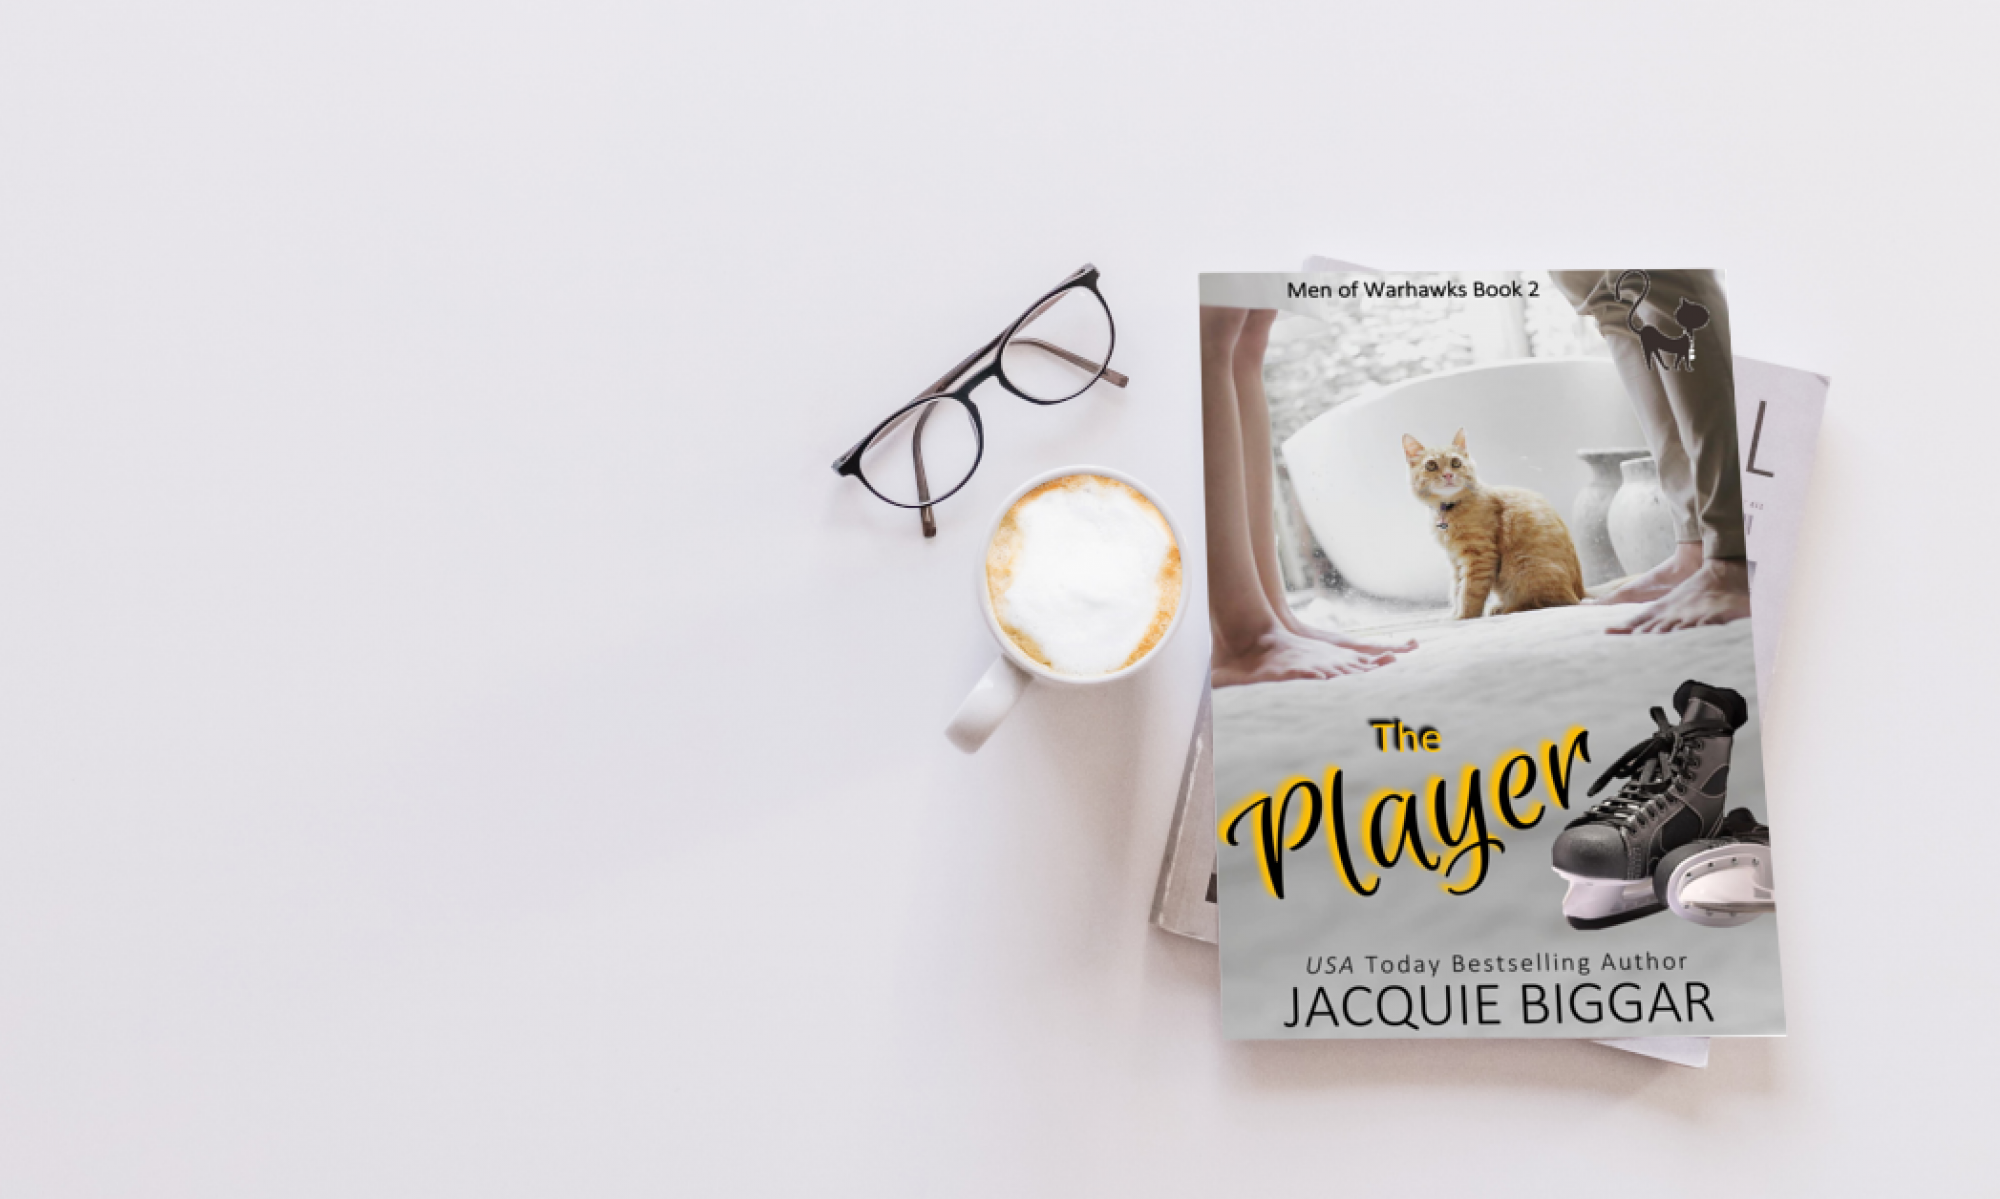 Jacquie Biggar-USA Today Best-selling author